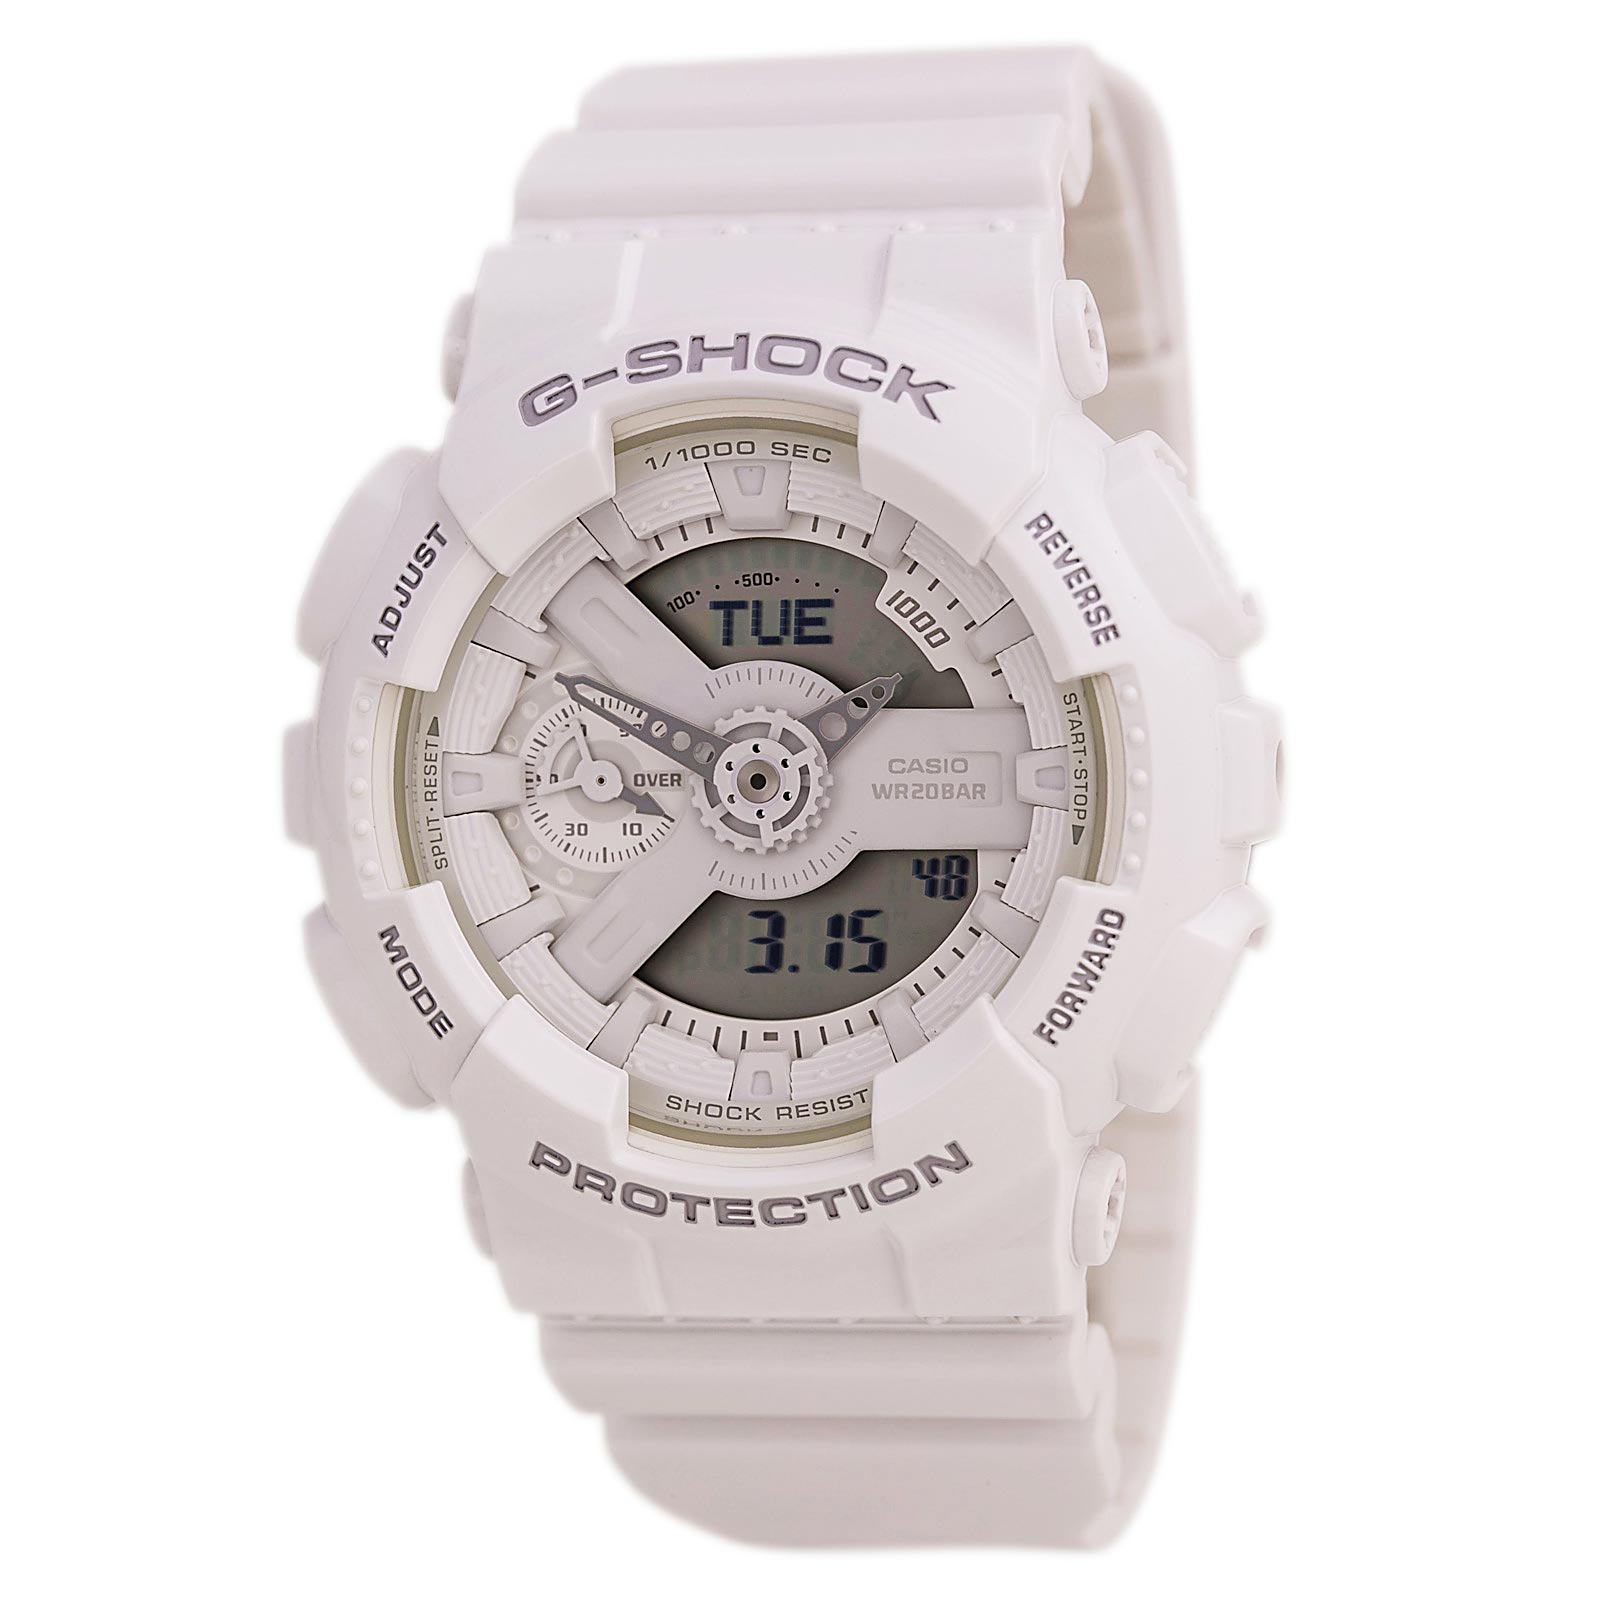 Casio Women's G-Shock S Series GMAS110 White Resin Digital Watch